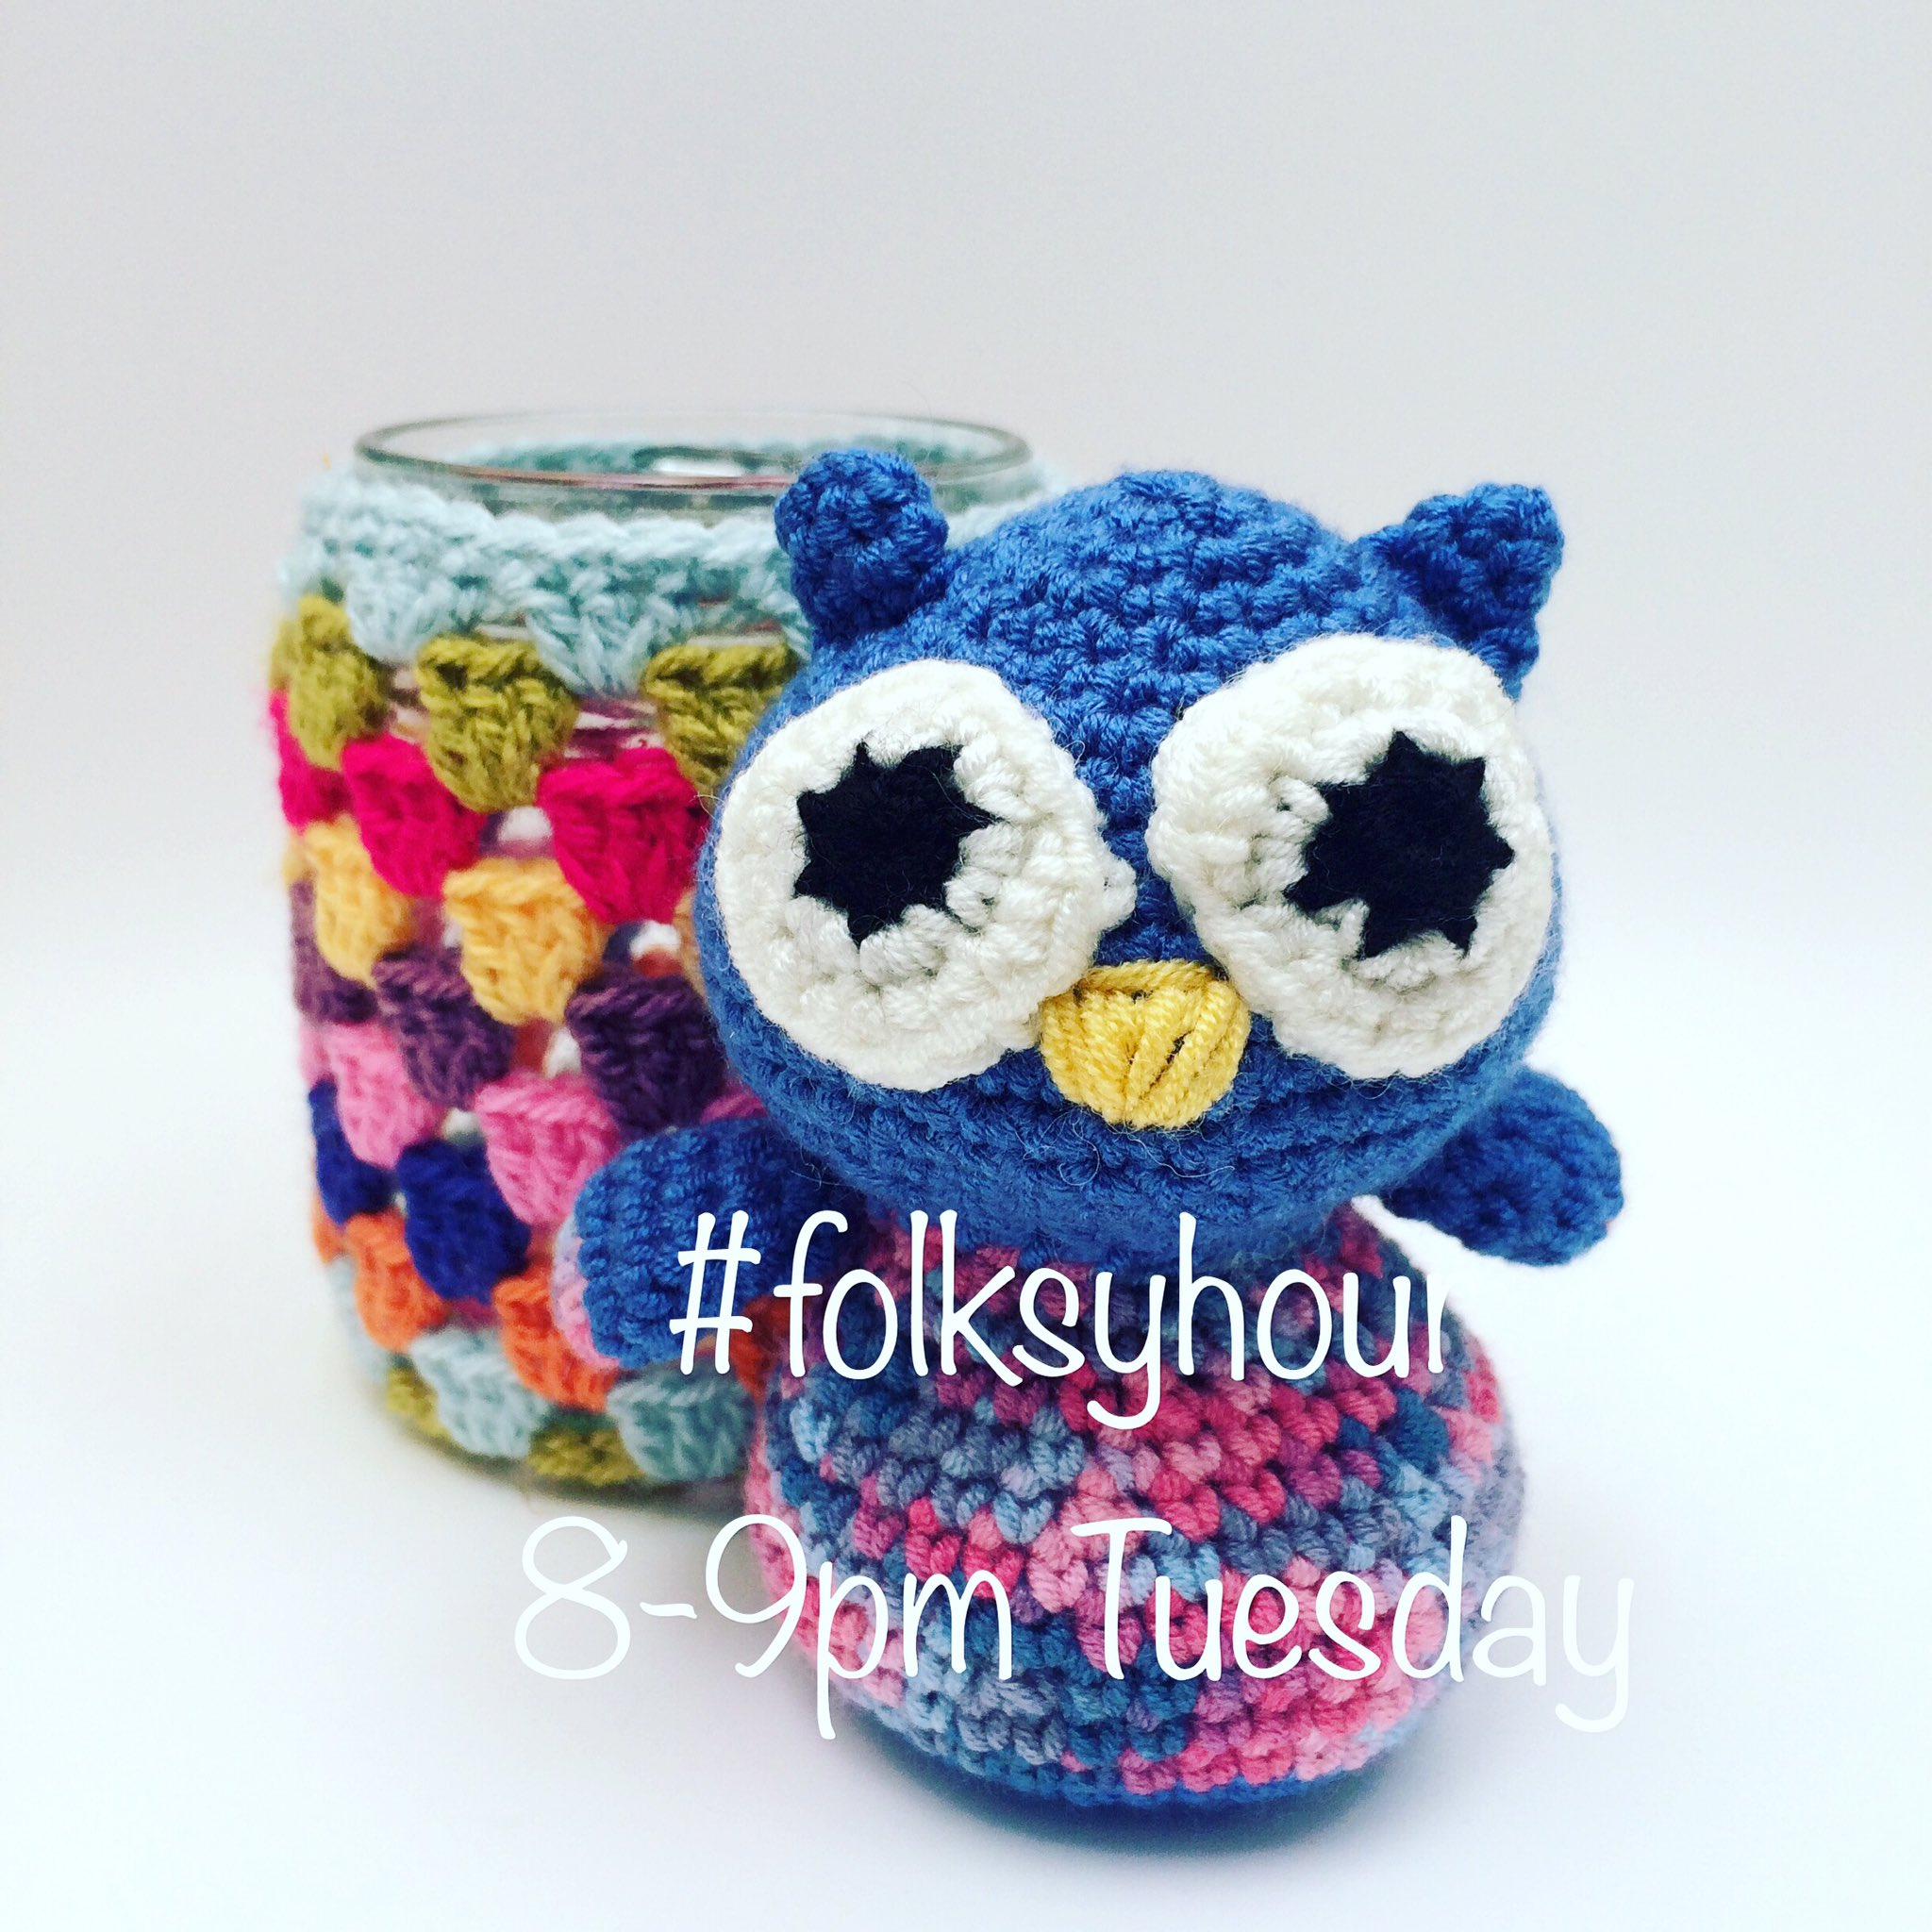 Super-excited to be hosting #folksyhour tomorrow evening 8-9pm! We'll be chatting about craft and wellbeing @folksy https://t.co/TMfYg9MDYP